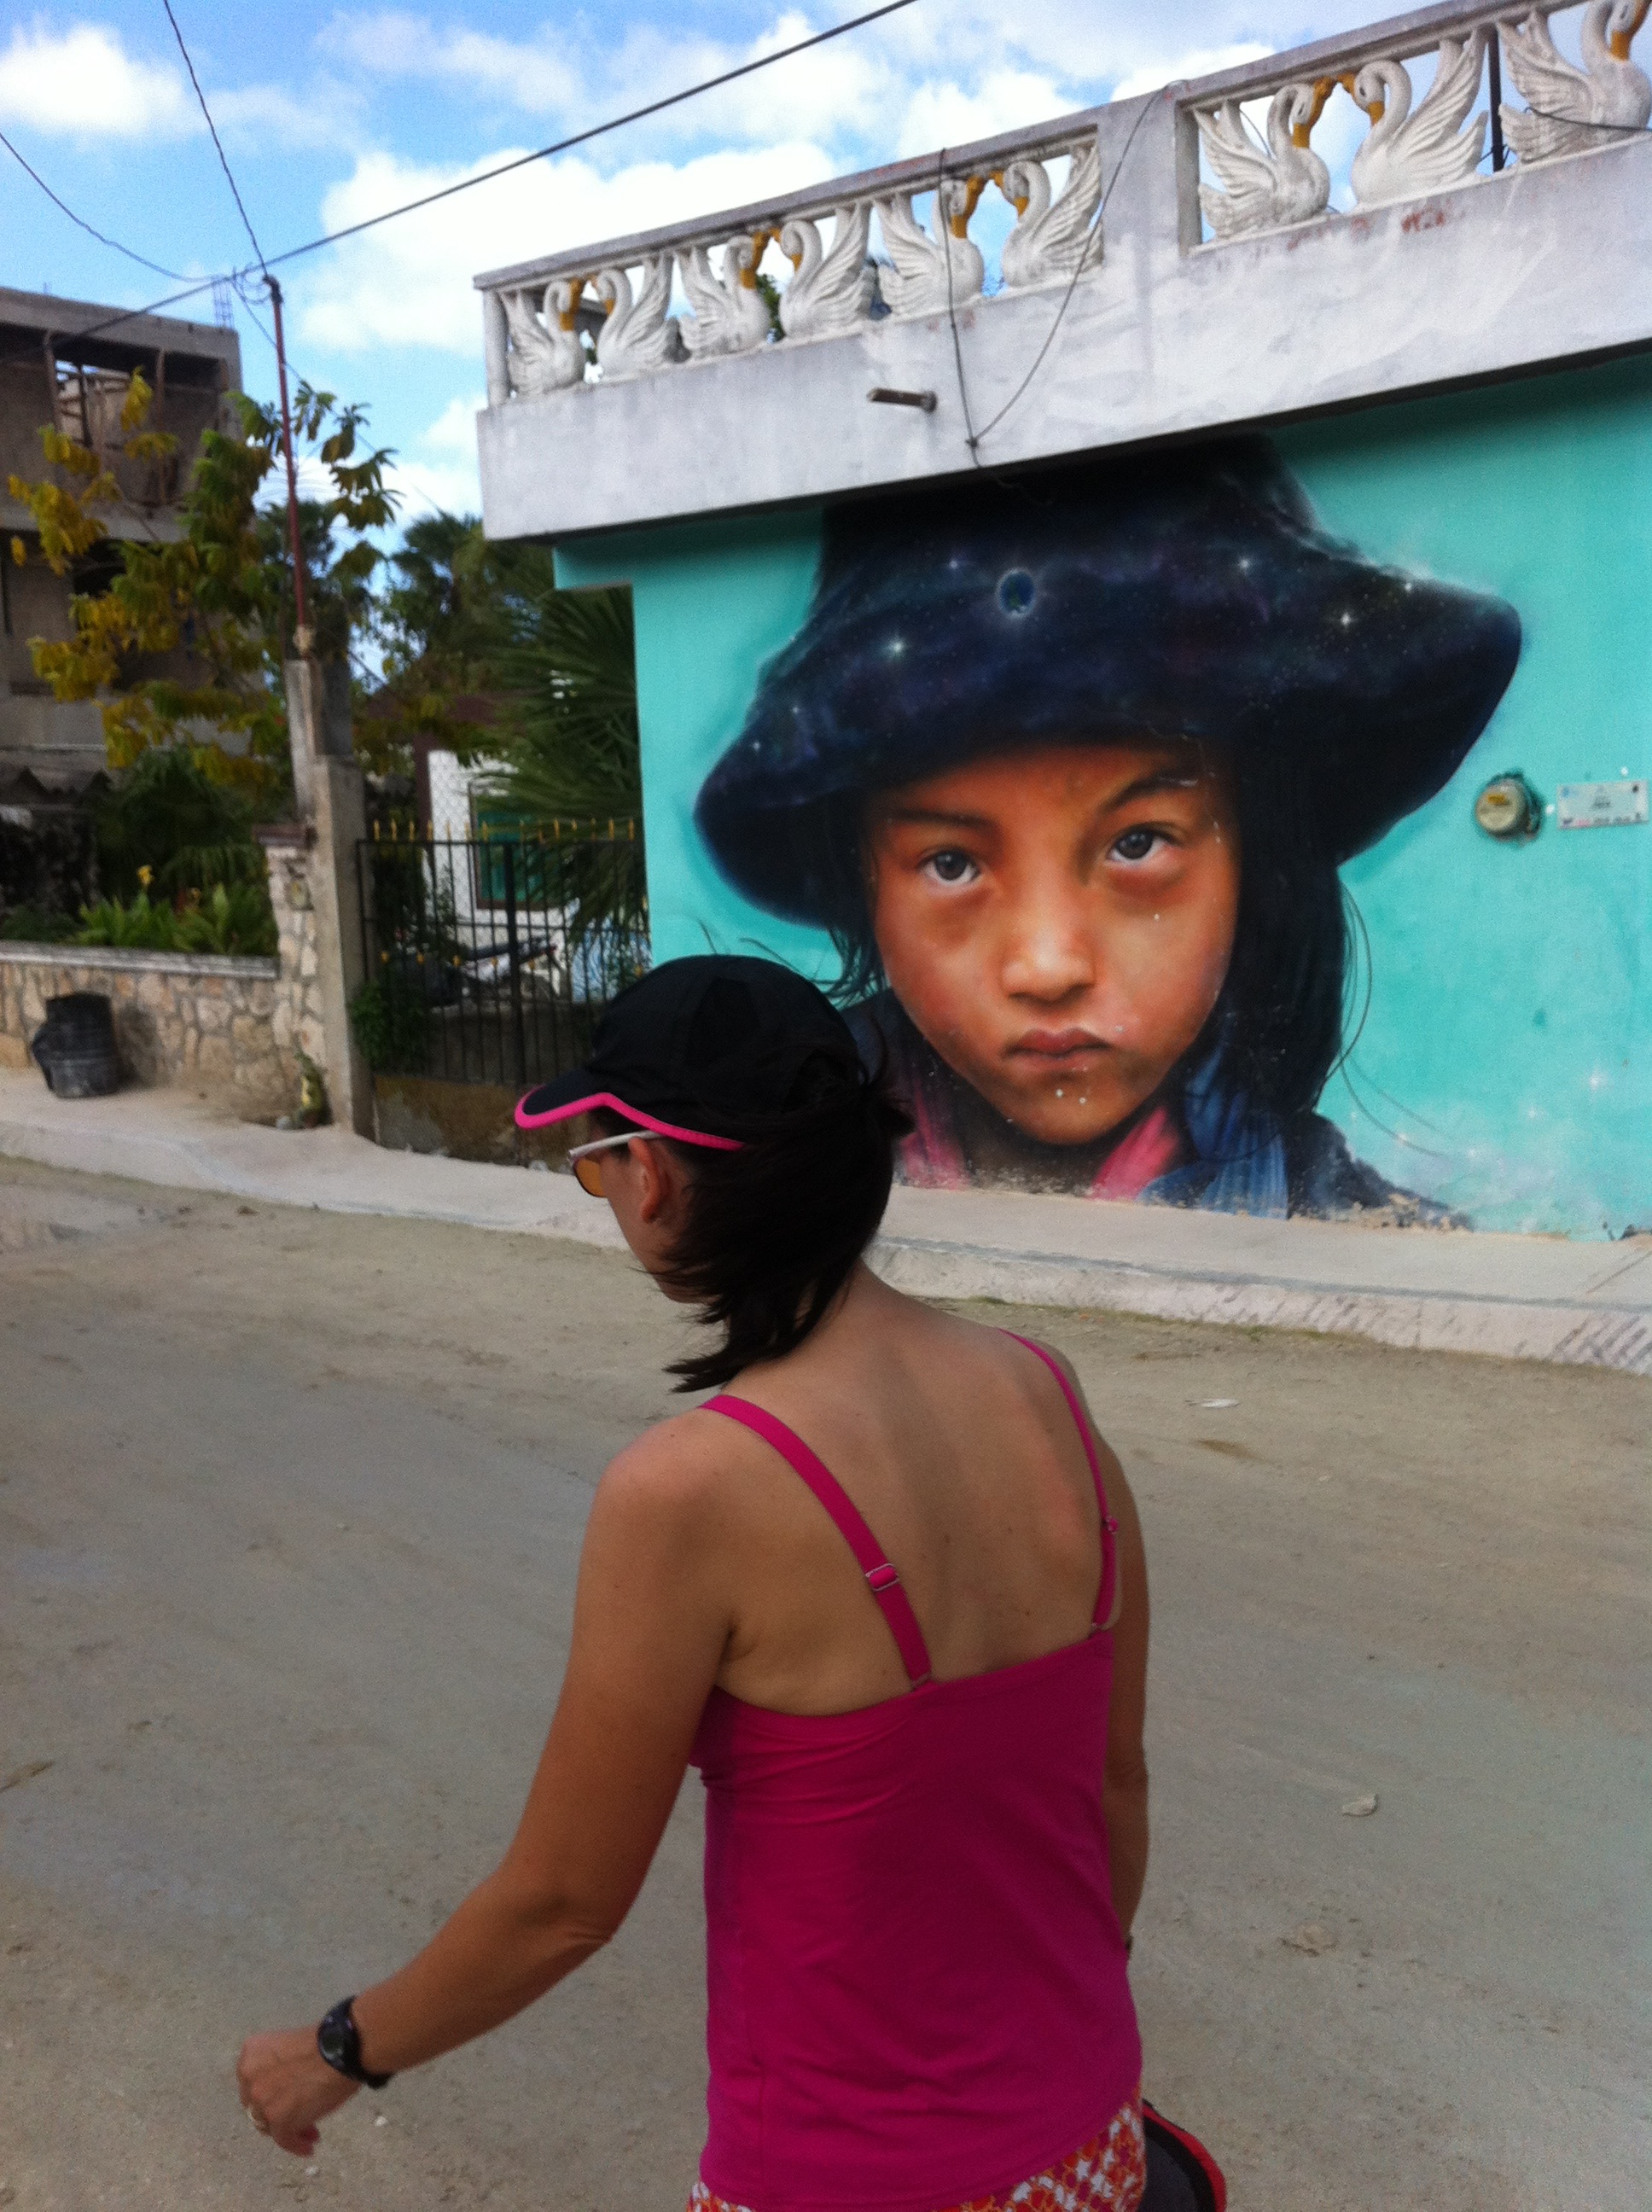 Murals decorate many buildings on the dusty streets of Isla Holbox.